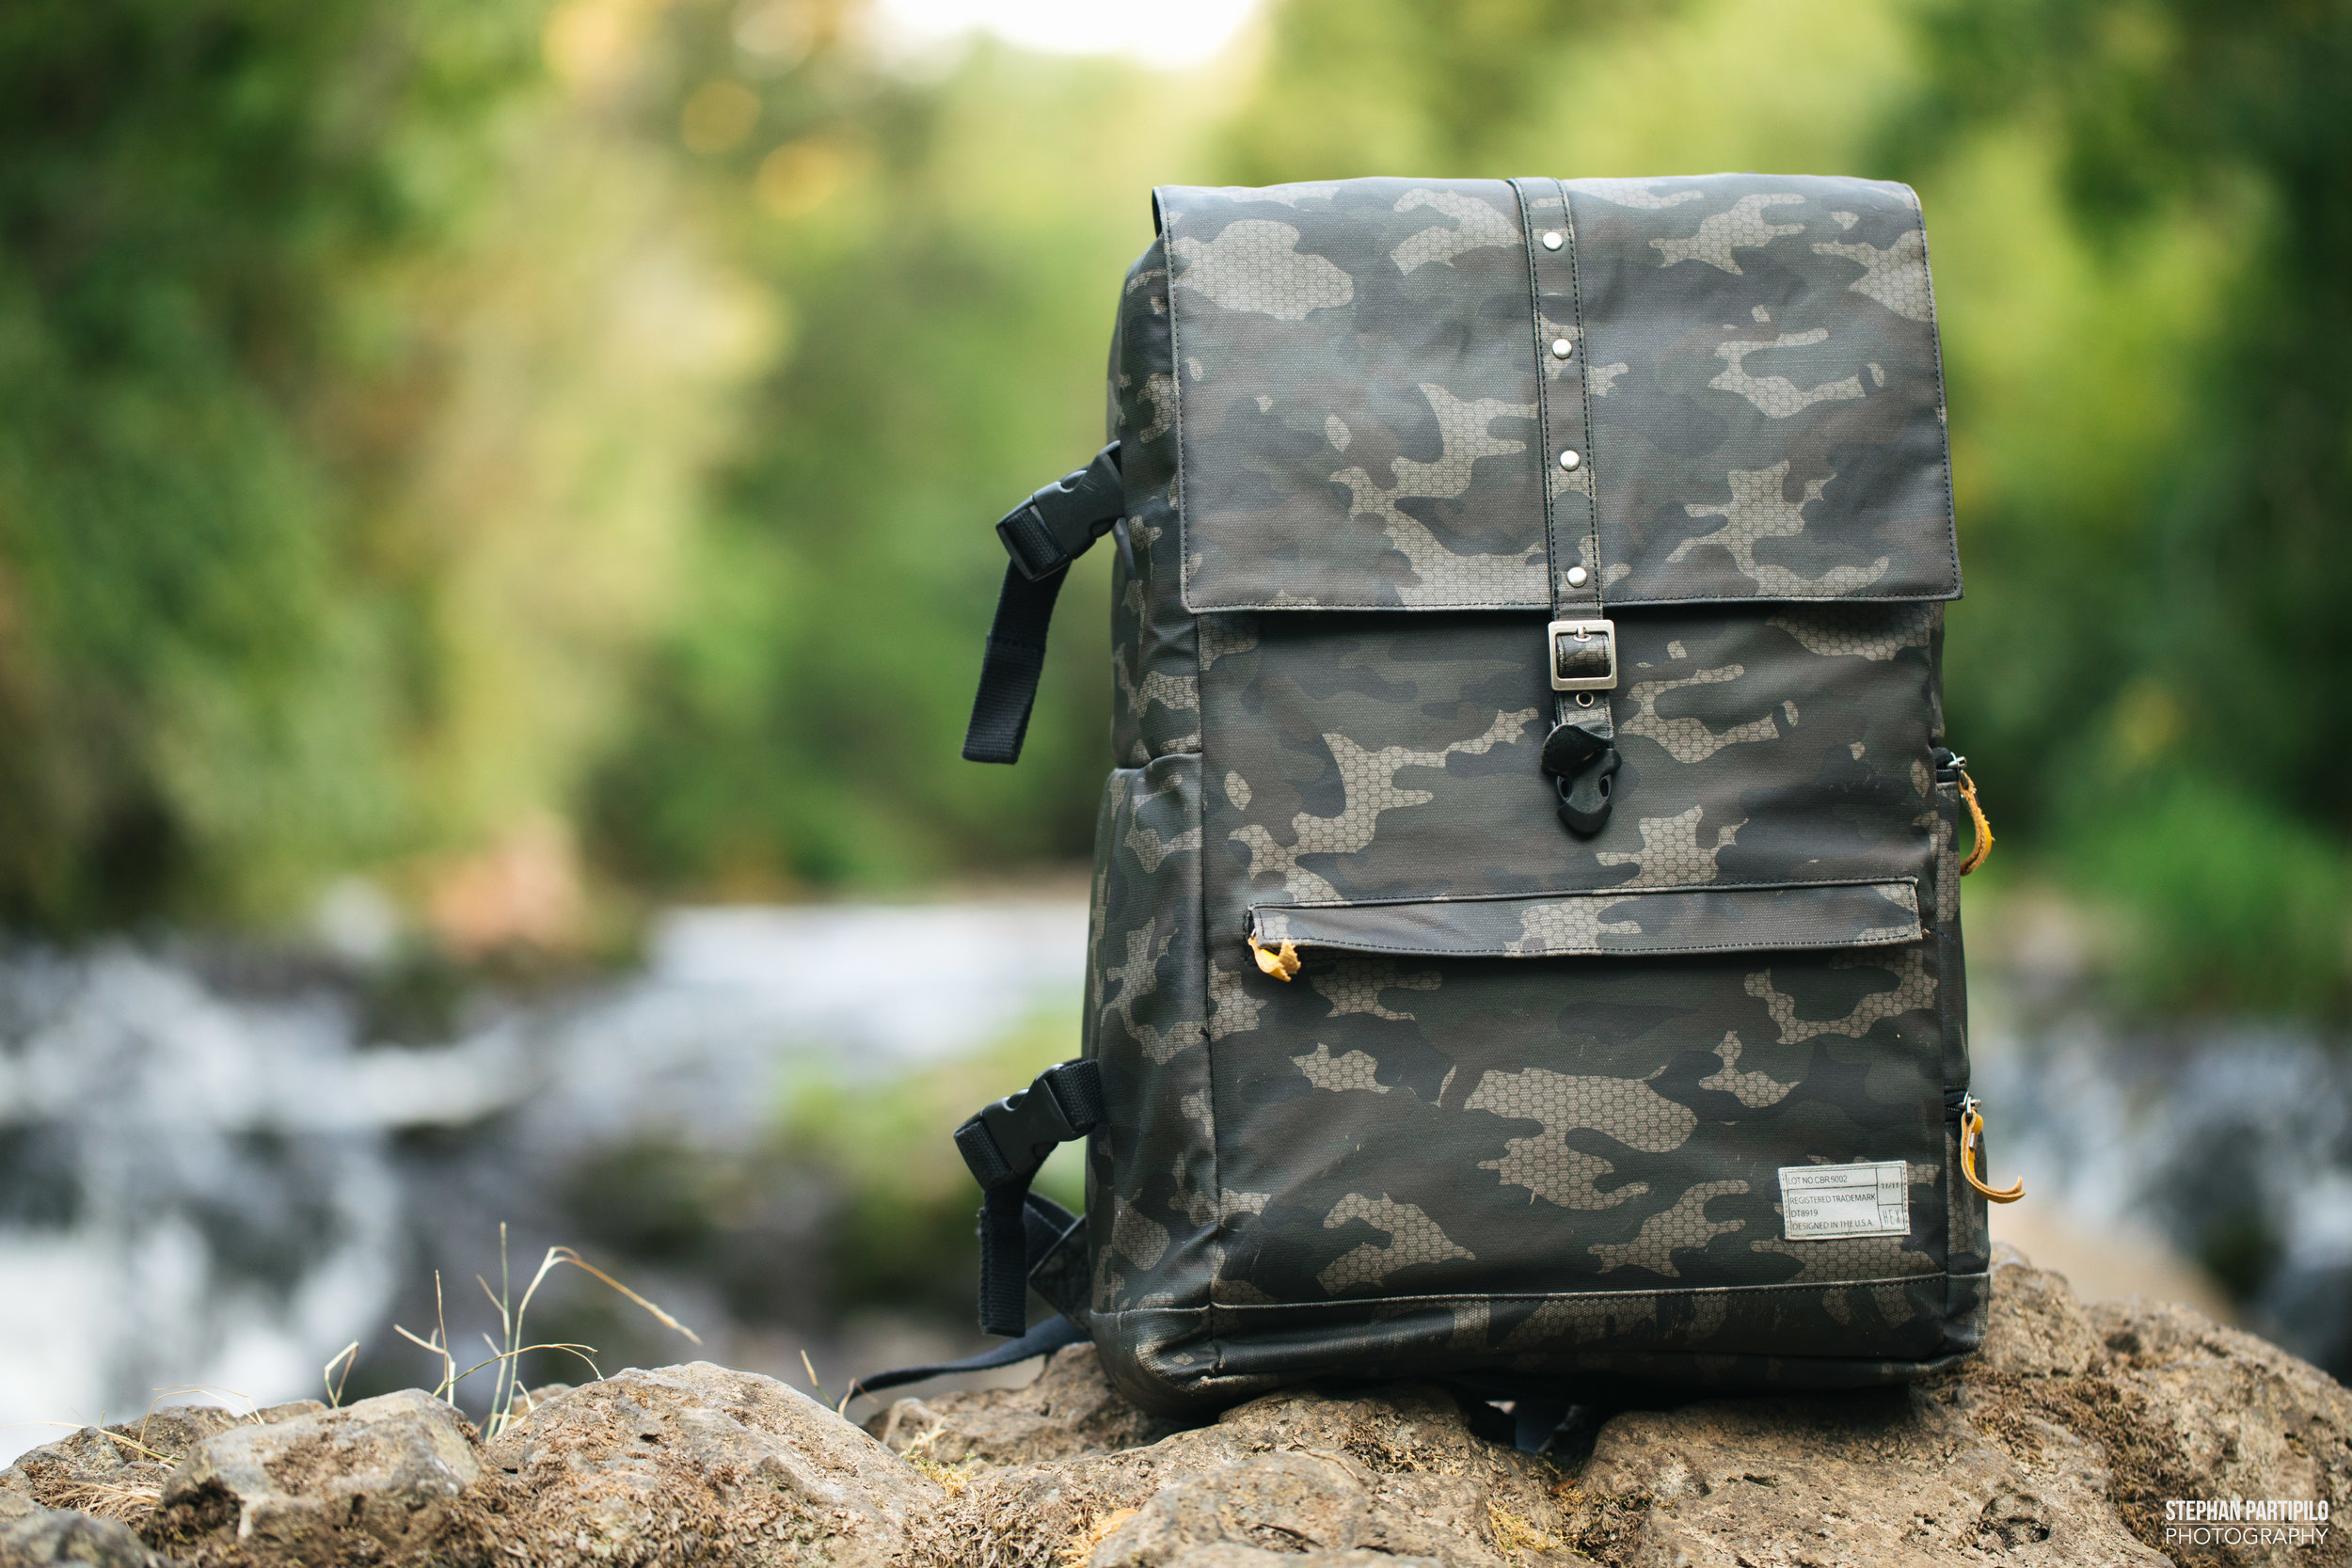 HEX Backpack August 2017 0G5A4322.jpg